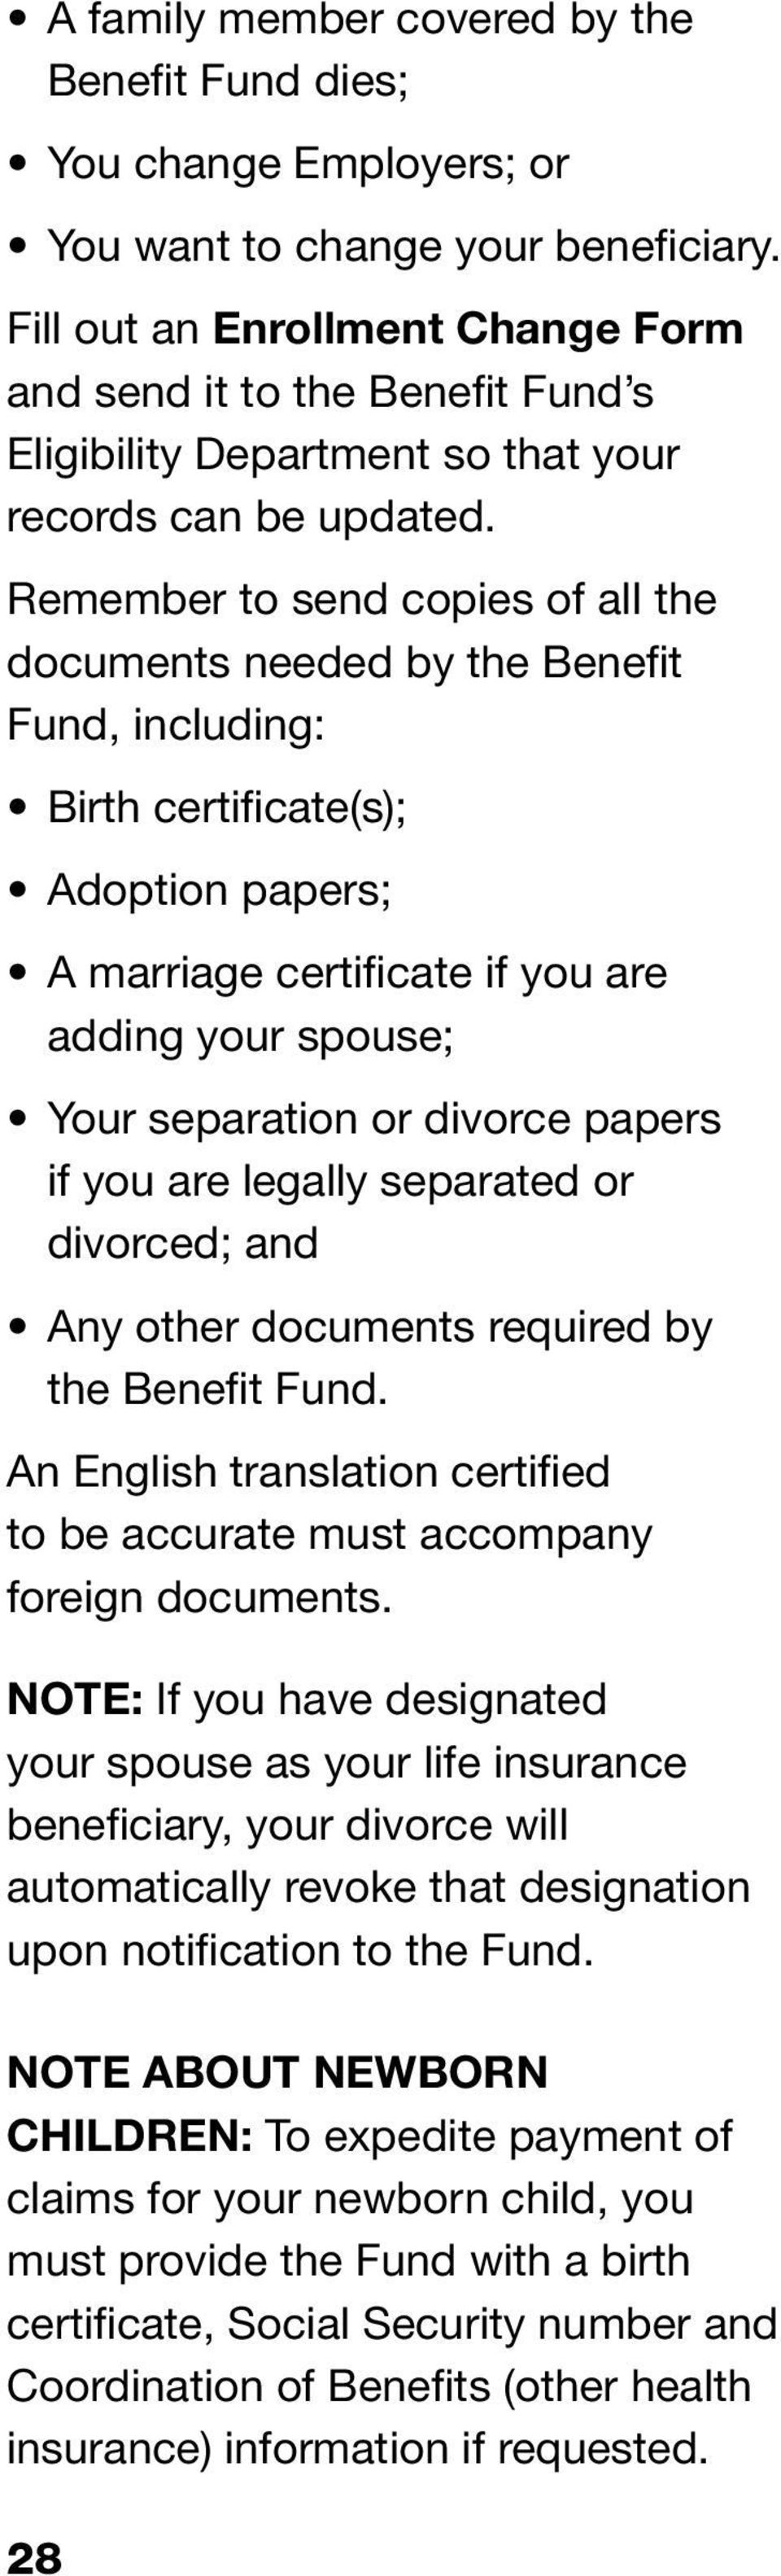 Remember to send copies of all the documents needed by the Benefit Fund, including: Birth certificate(s); Adoption papers; A marriage certificate if you are adding your spouse; Your separation or